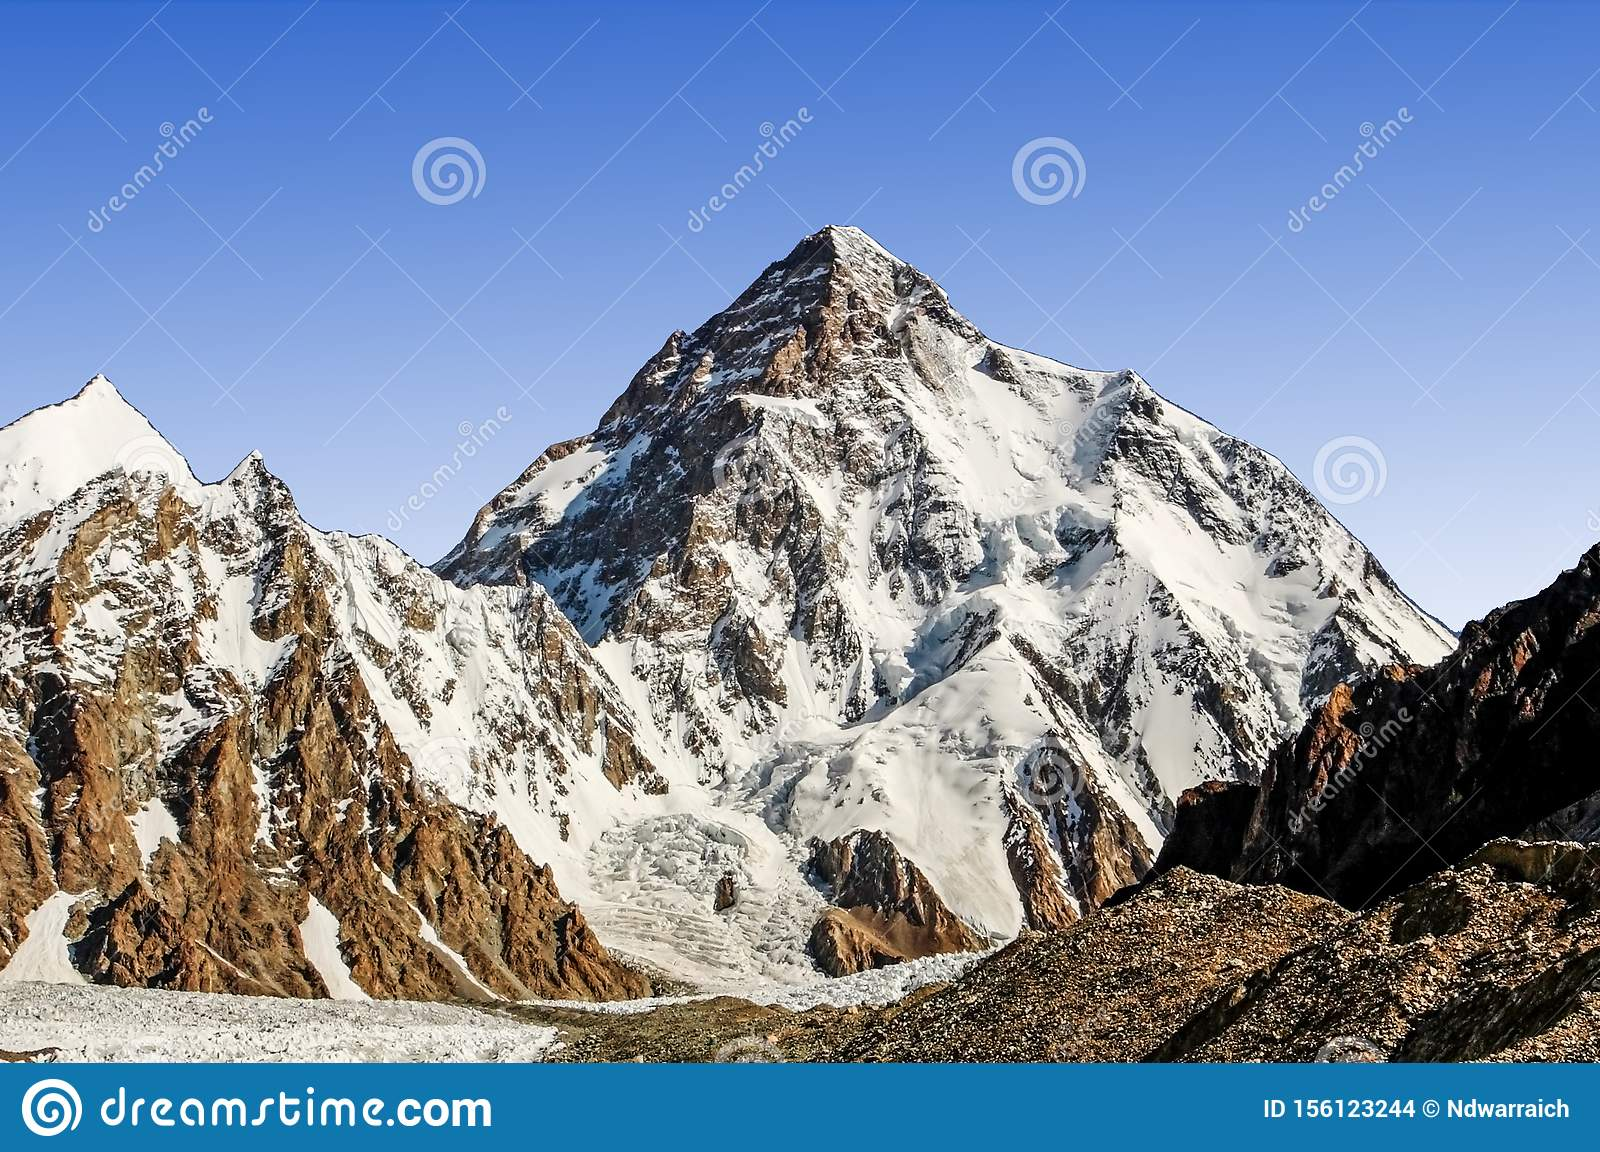 K2 The Second Tallest Mountains Stock Photo - Image of meters, destination:  156123244